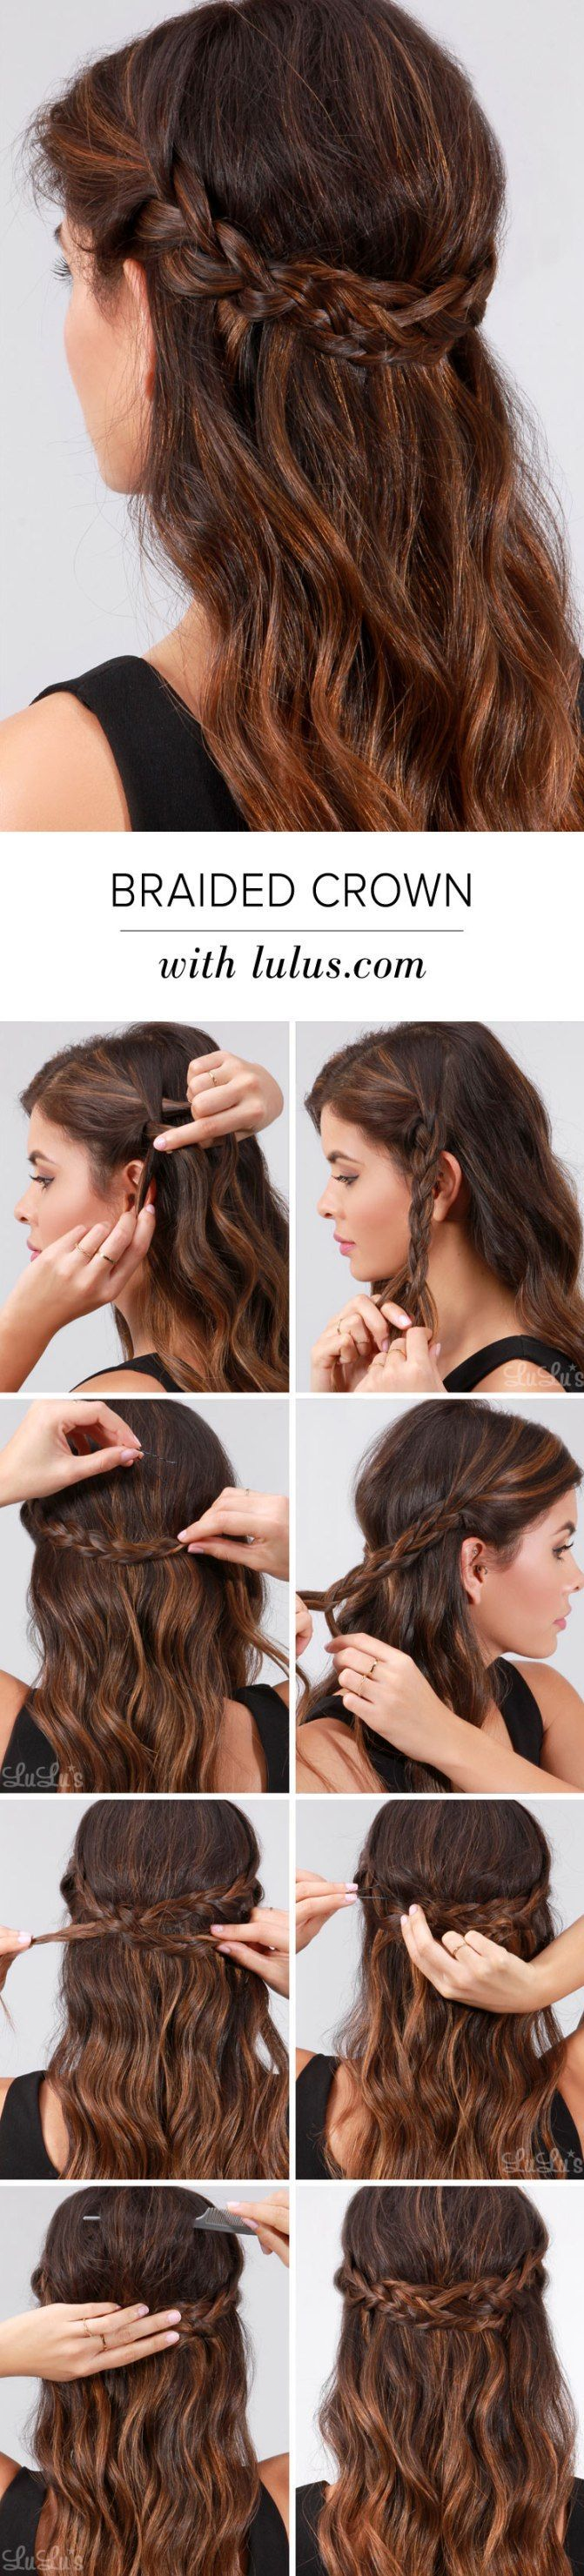 479 best Hair ✠How To images on Pinterest